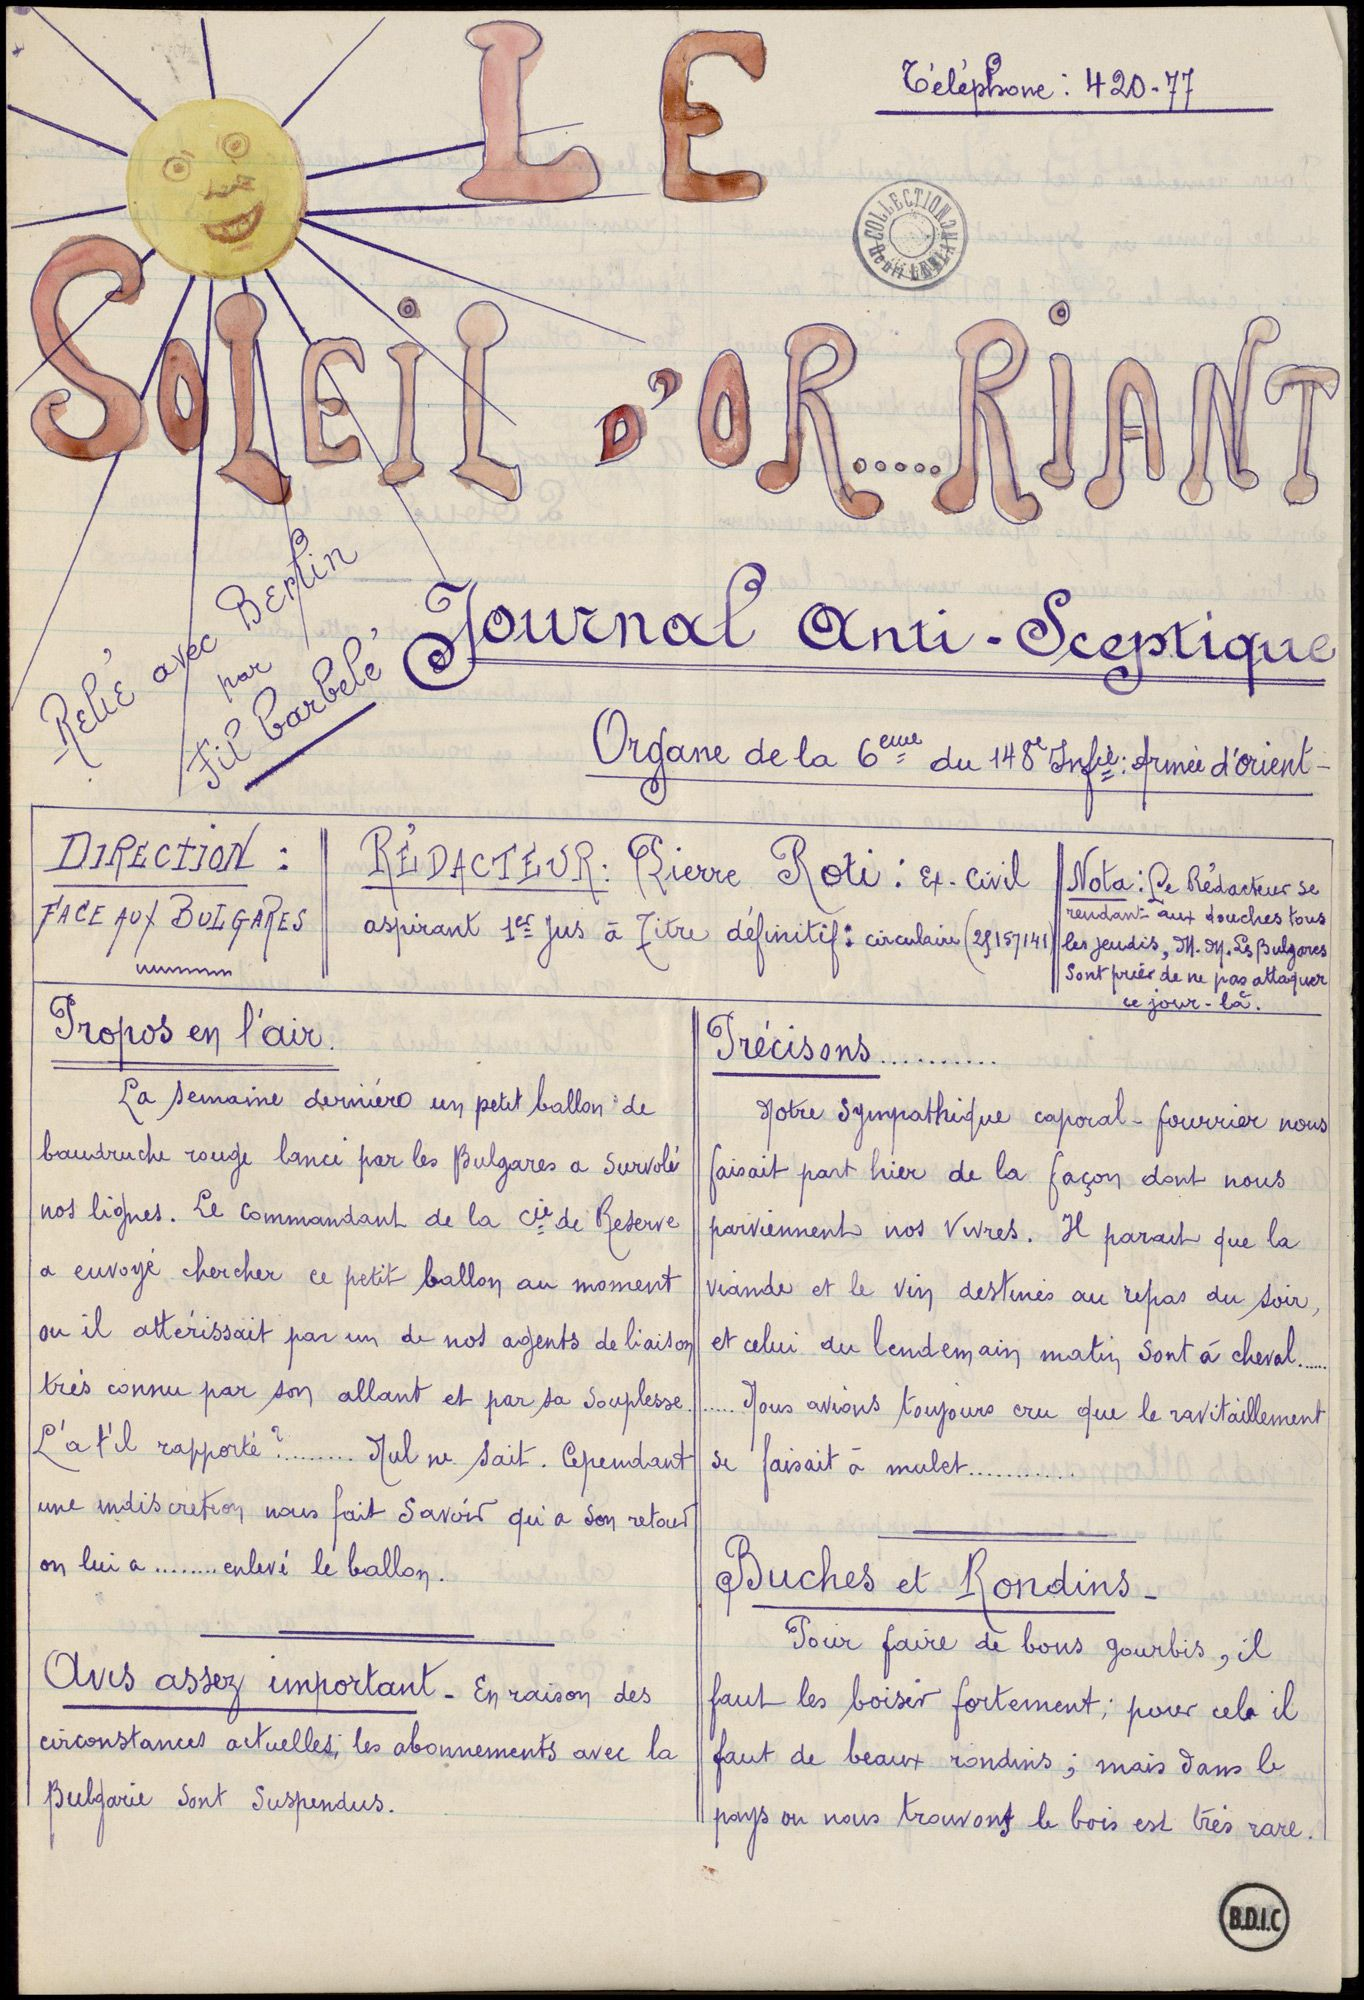 le soleil d or riant is a rare example of a trench newspaper